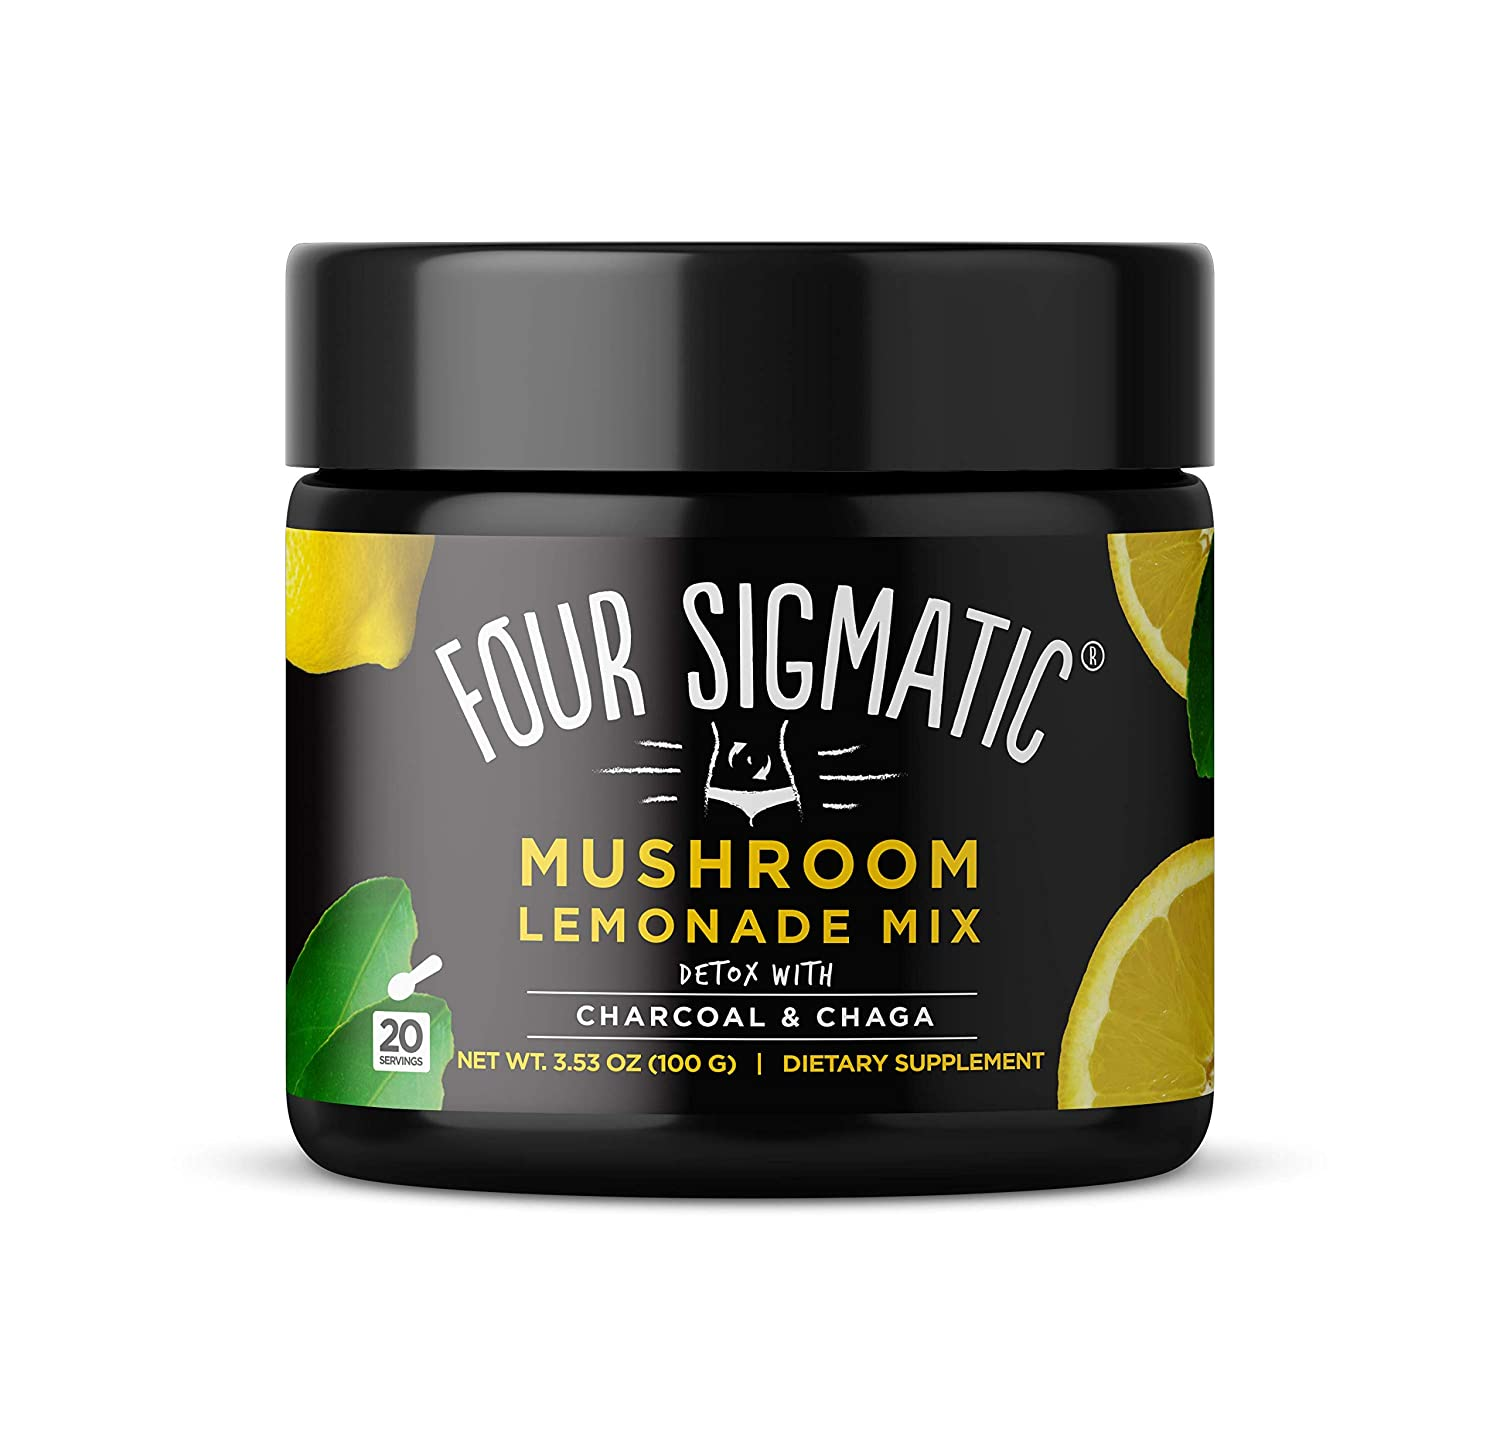 Four Sigmatic Mushroom Lemonade with Activated Charcoal and Chaga – Detox Digest – 100 gram – 20 servings